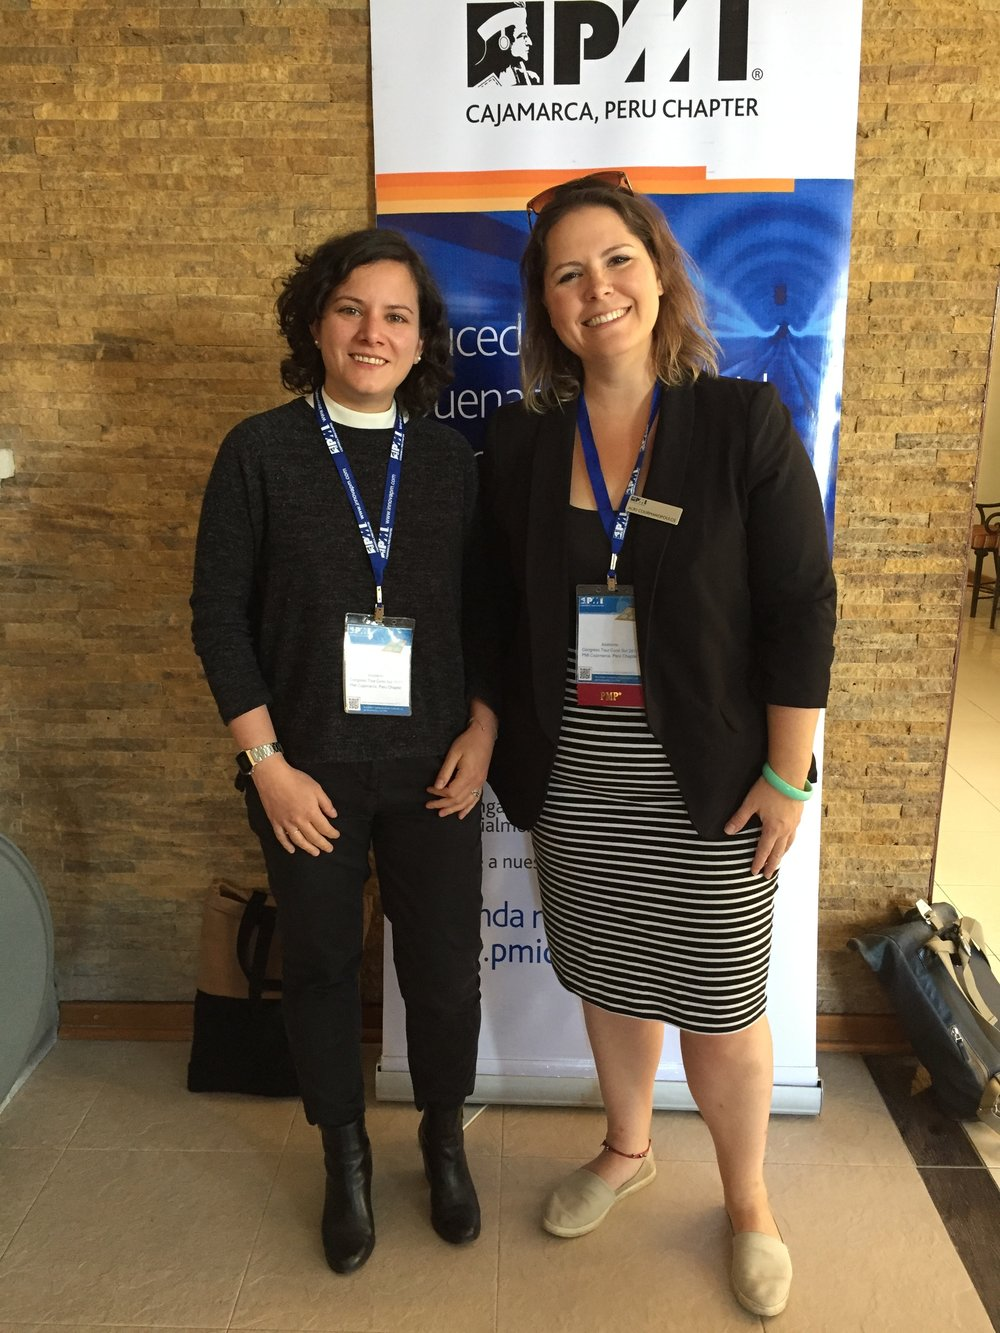 Left to right: Mercedes Urbina and Aliki Courmanopoulos